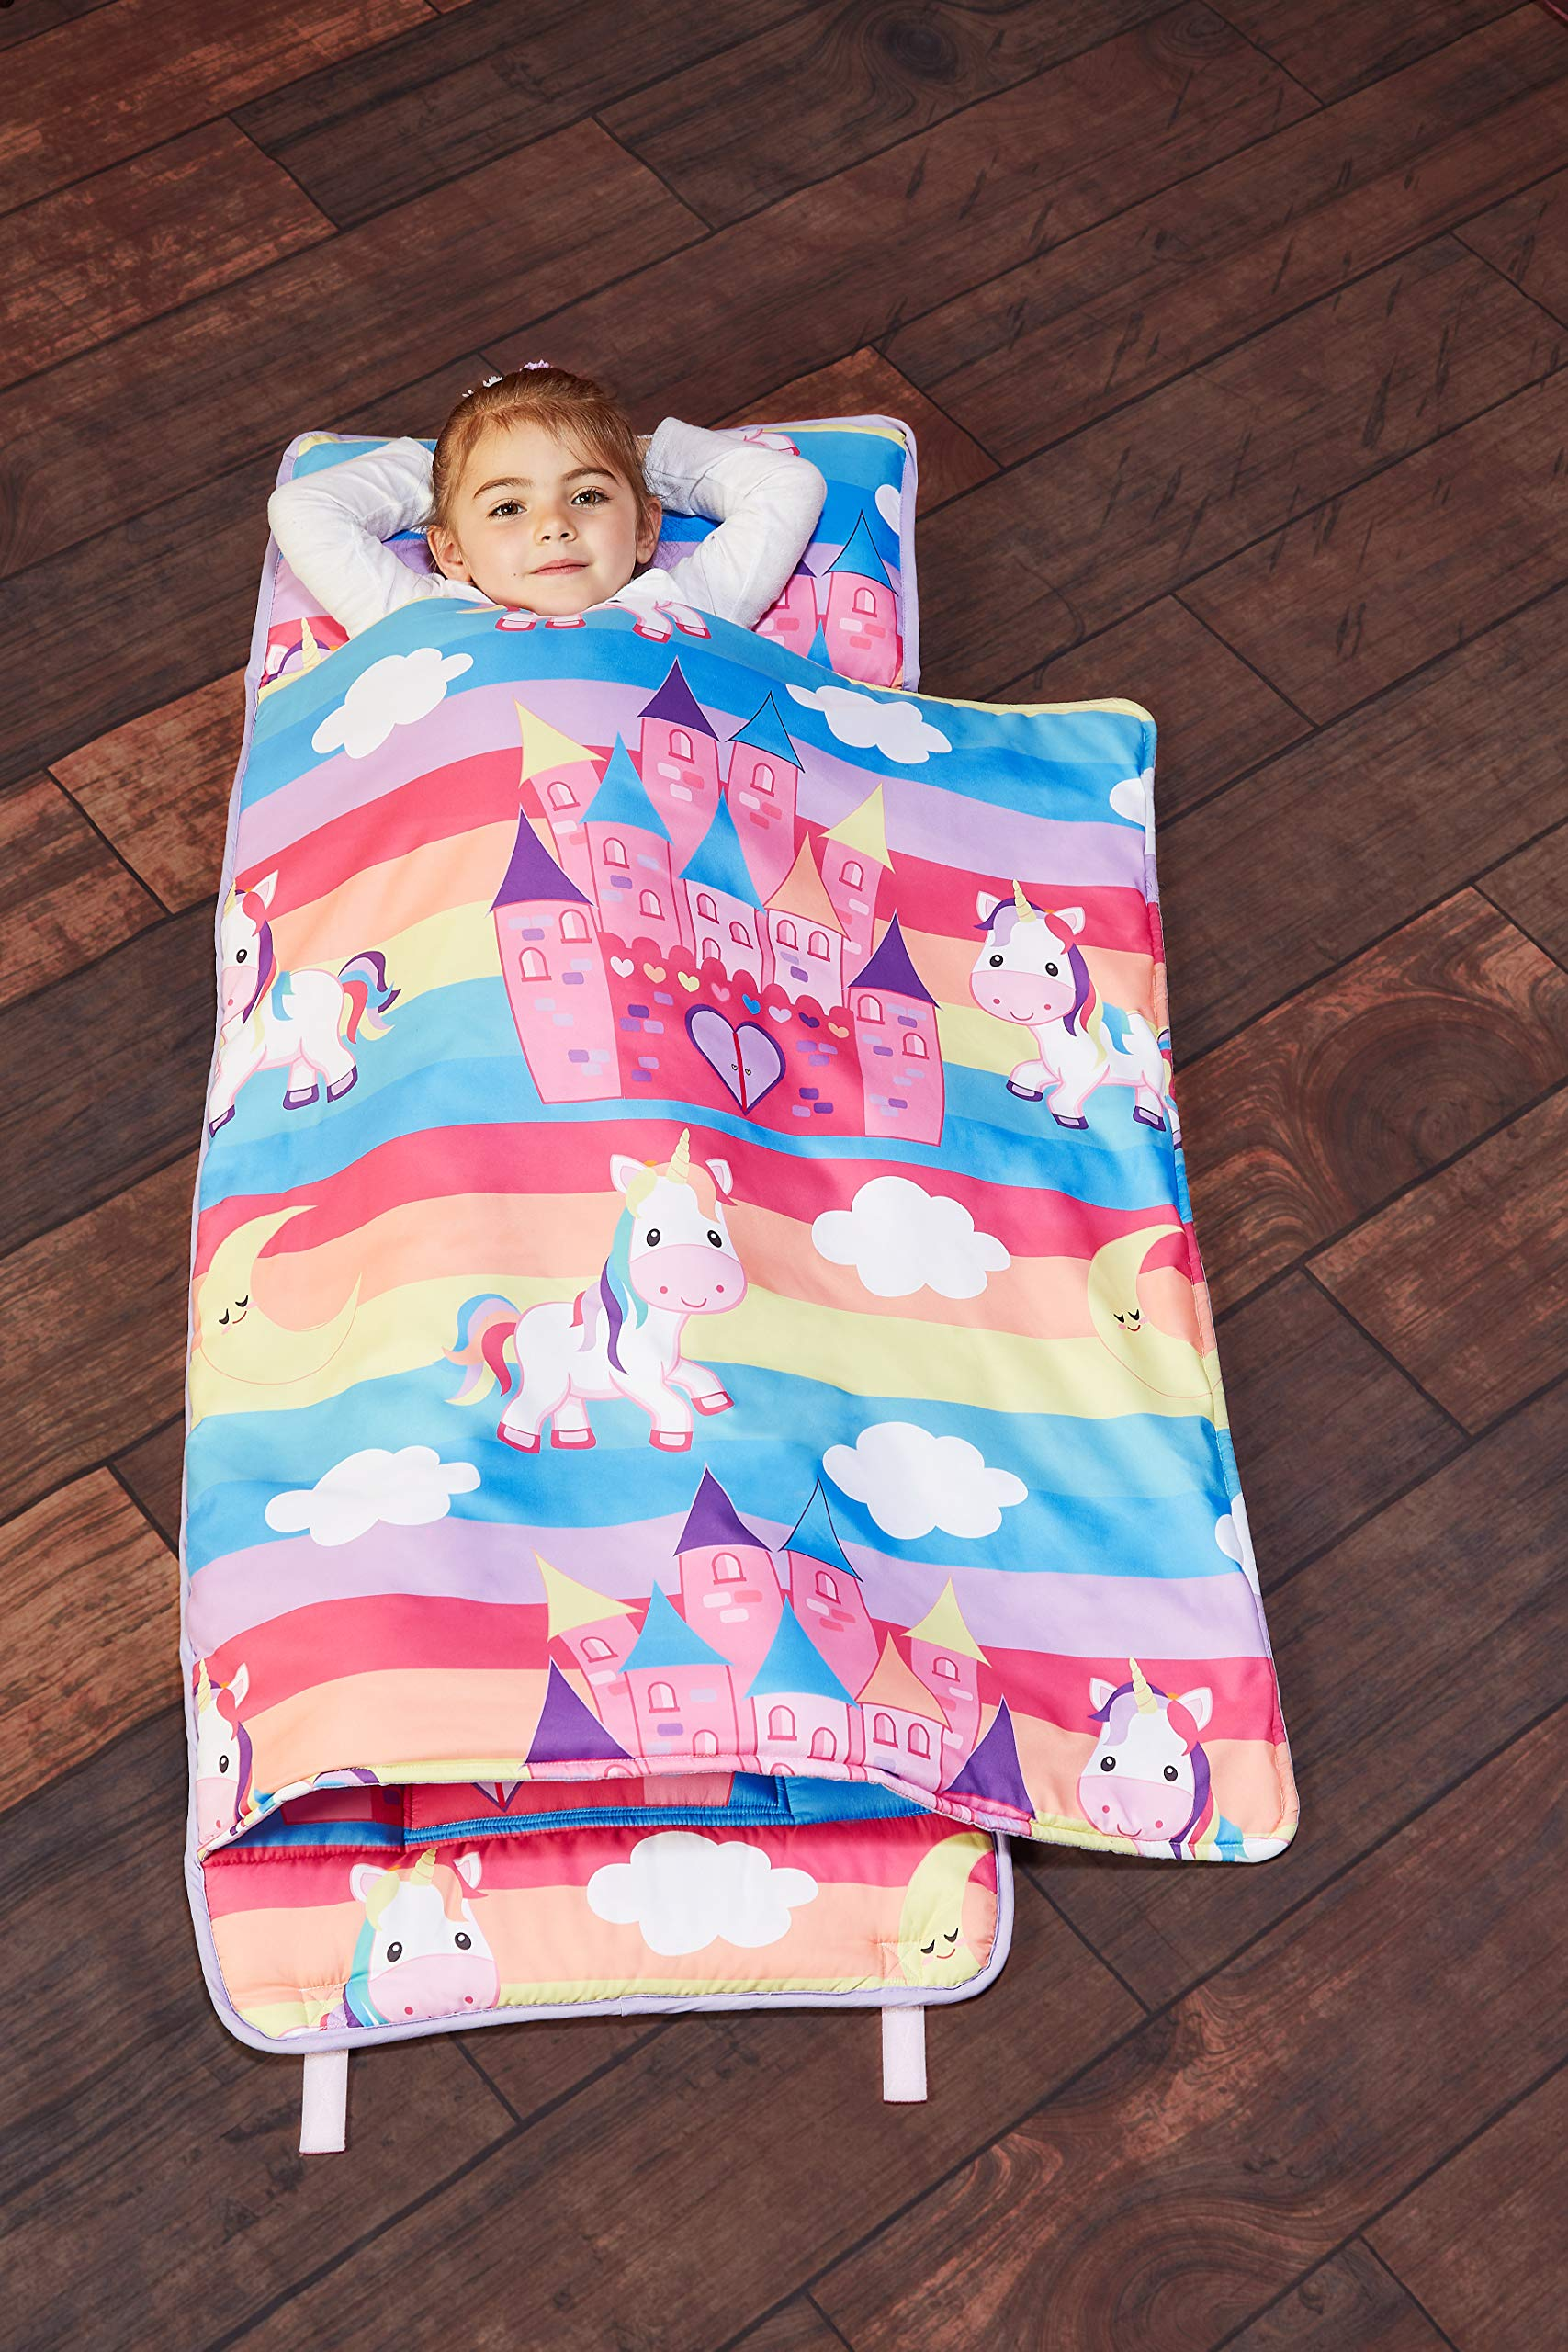 EVERYDAY KIDS Toddler Nap Mat with Removable Pillow - Unicorn Dreams - Carry Handle with Straps Closure, Rollup Design, Soft Microfiber for Preschool, Daycare, Travel Sleeping Bag - Ages 3-6 Years by EVERYDAY KIDS